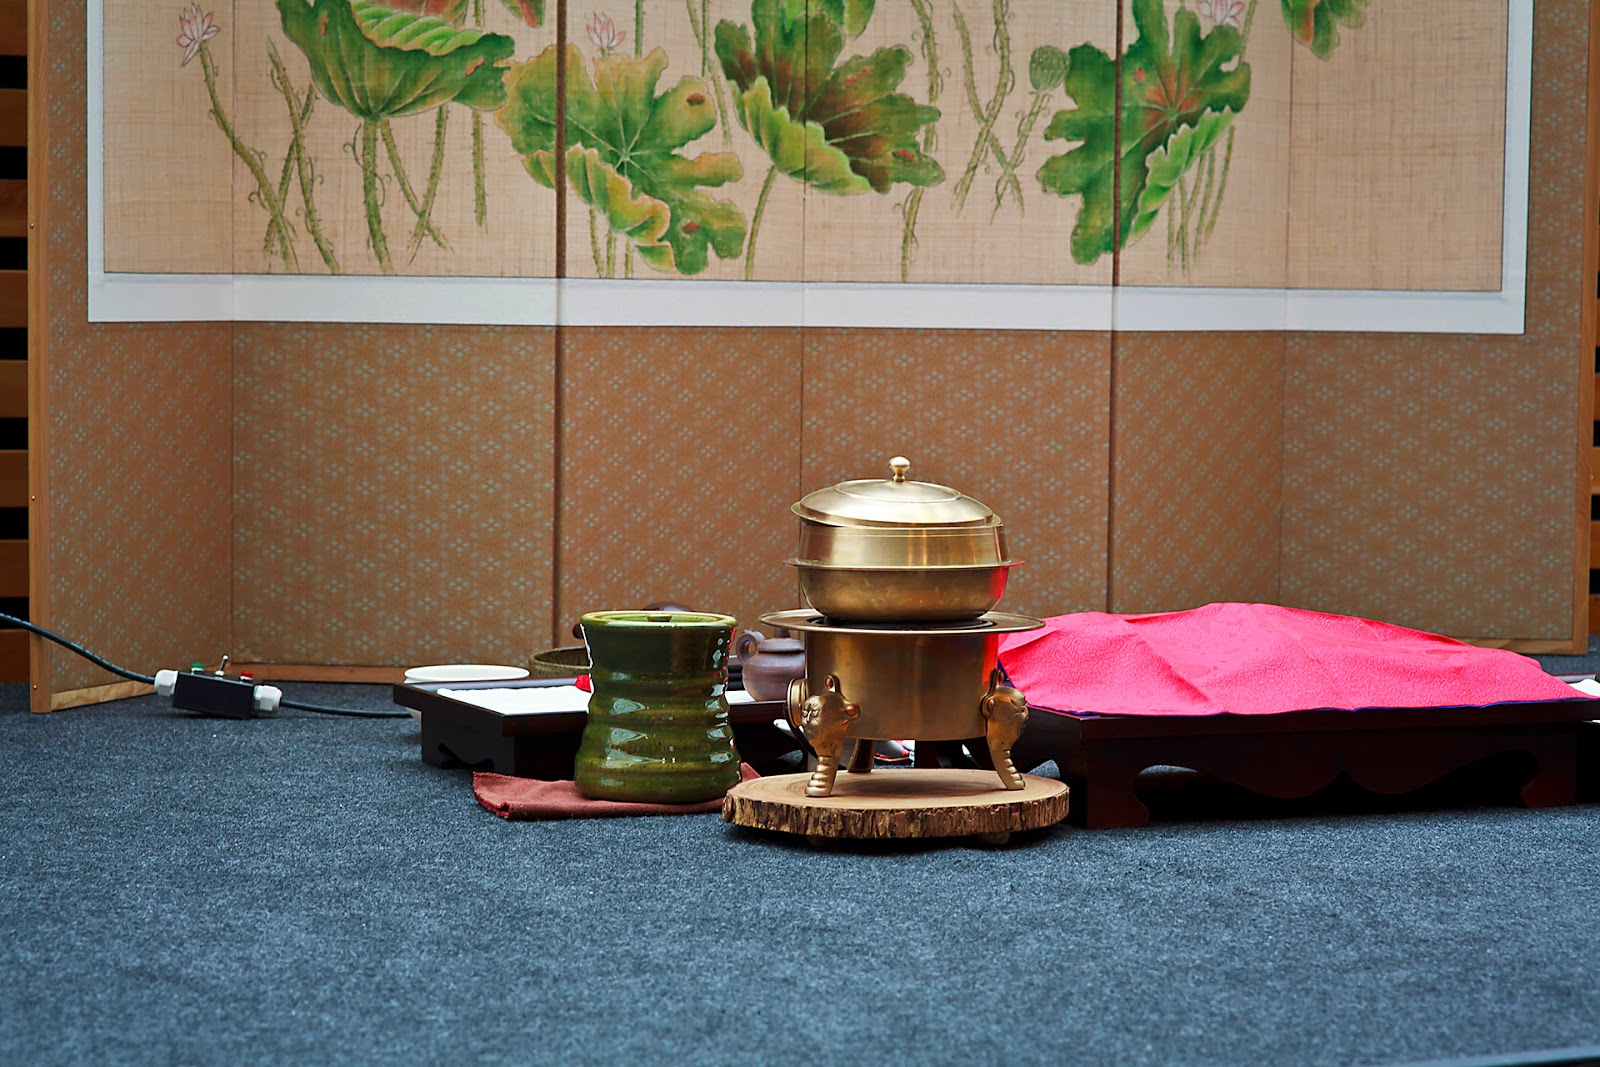 Image of a tea ceremony